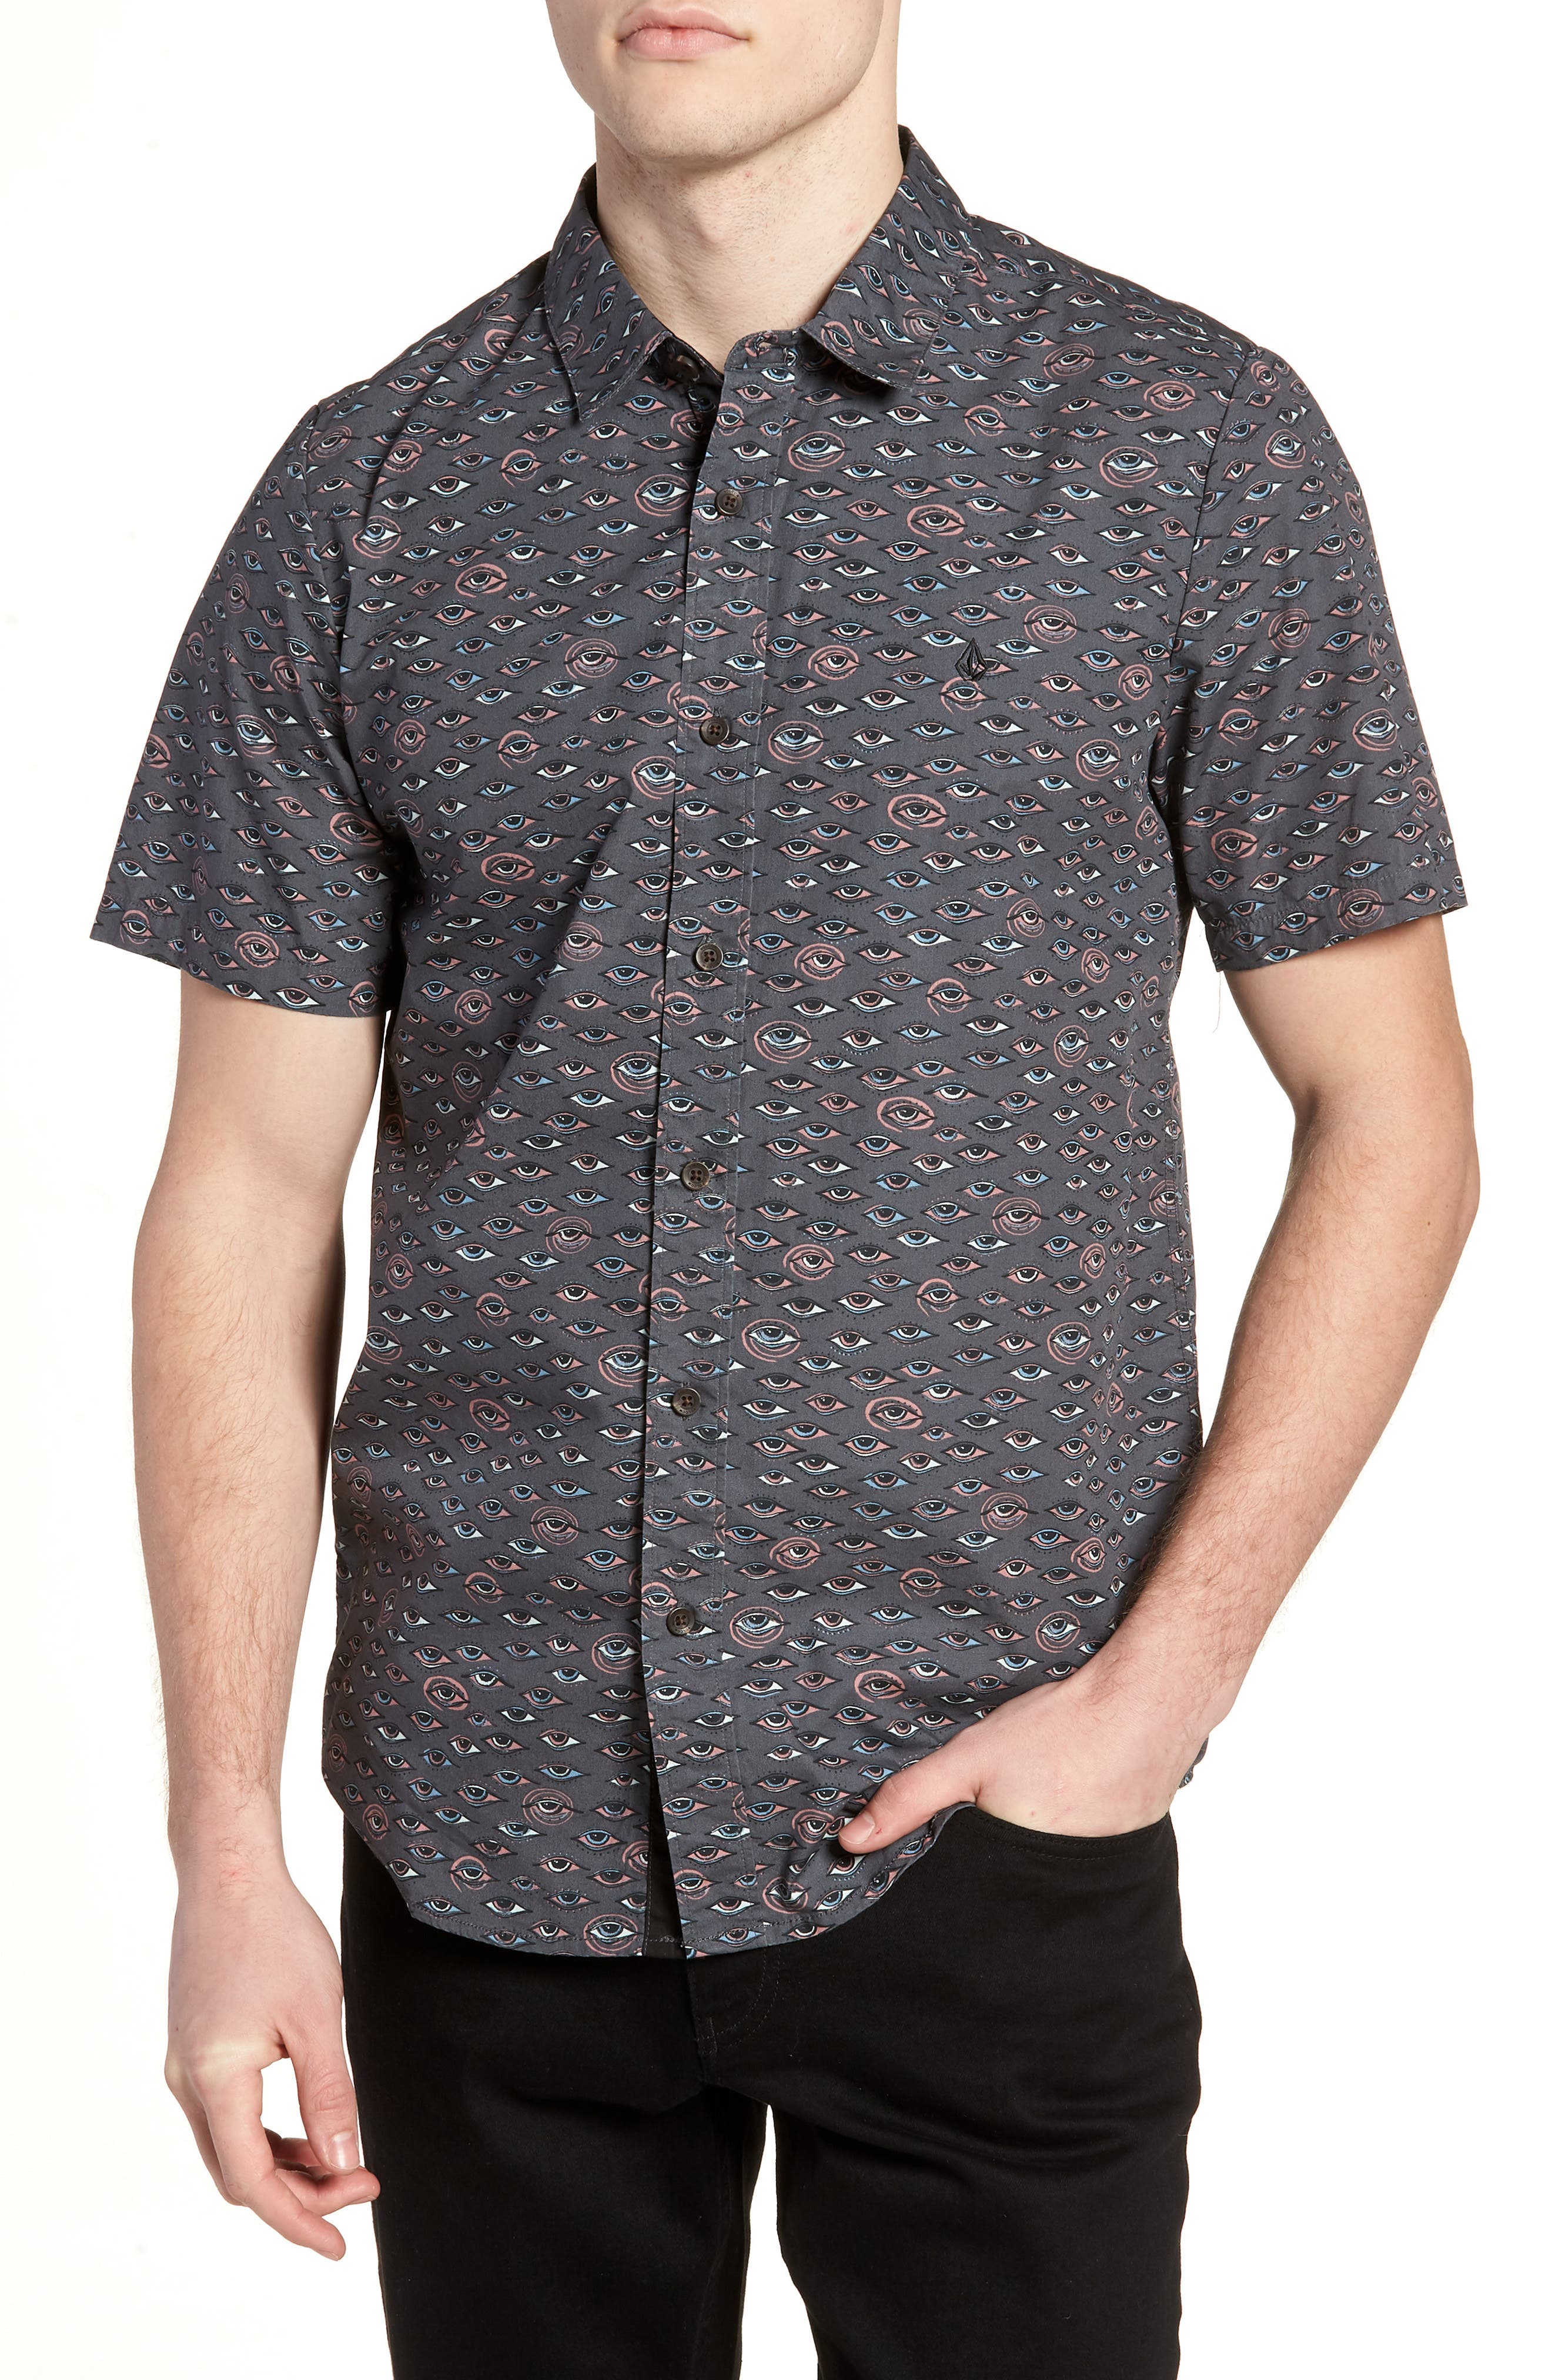 Burch Woven Shirt,                         Main,                         color, 020